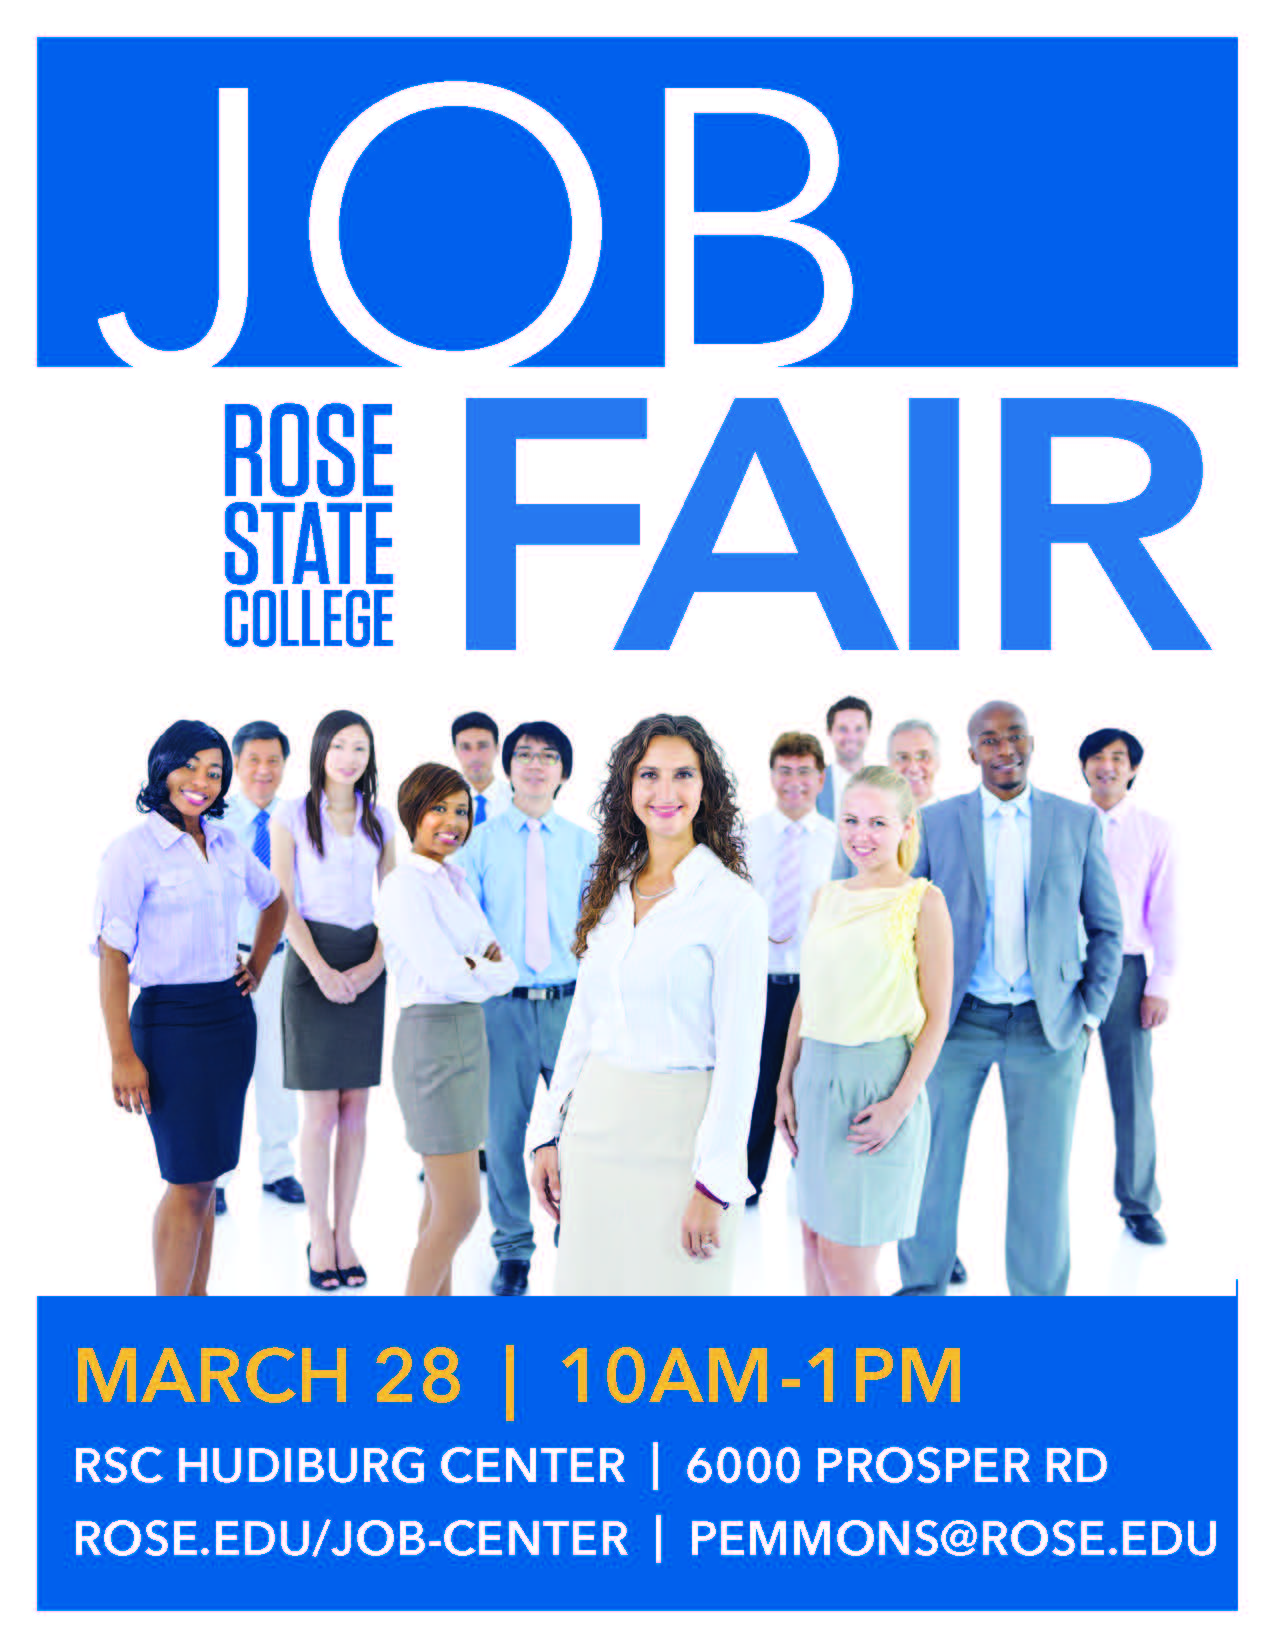 March 28 2019 Job Fair Image - RSC Hudiburg Center, 10 am - 1 pm